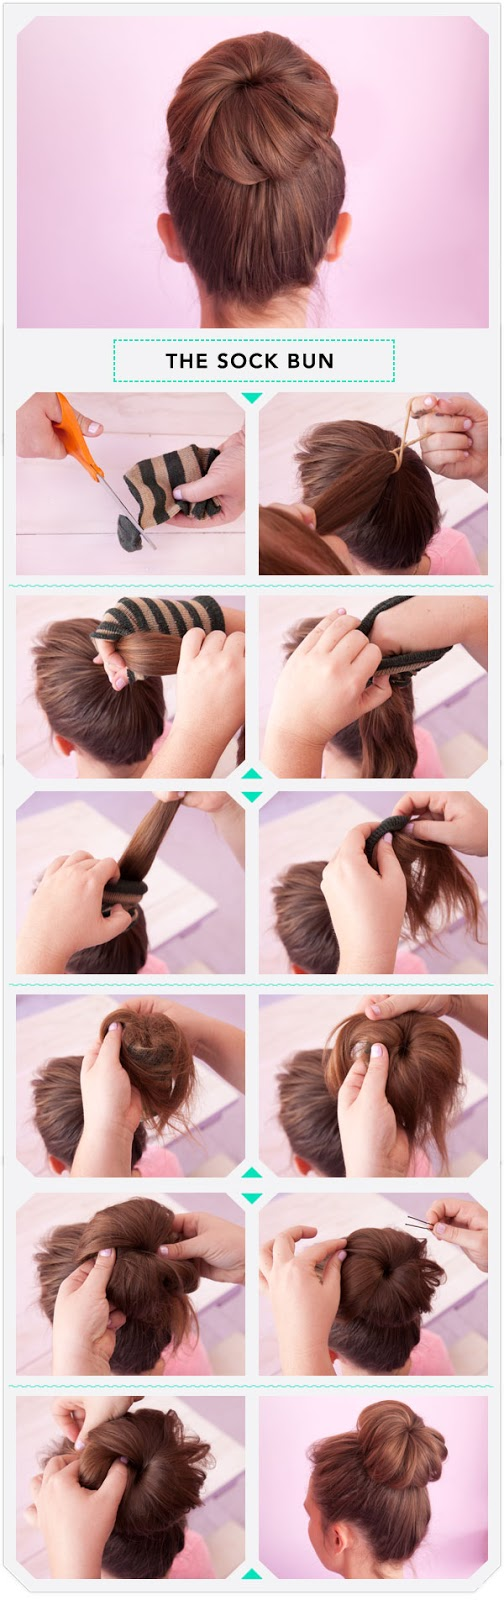 sock-bun-diy-malorie-anne